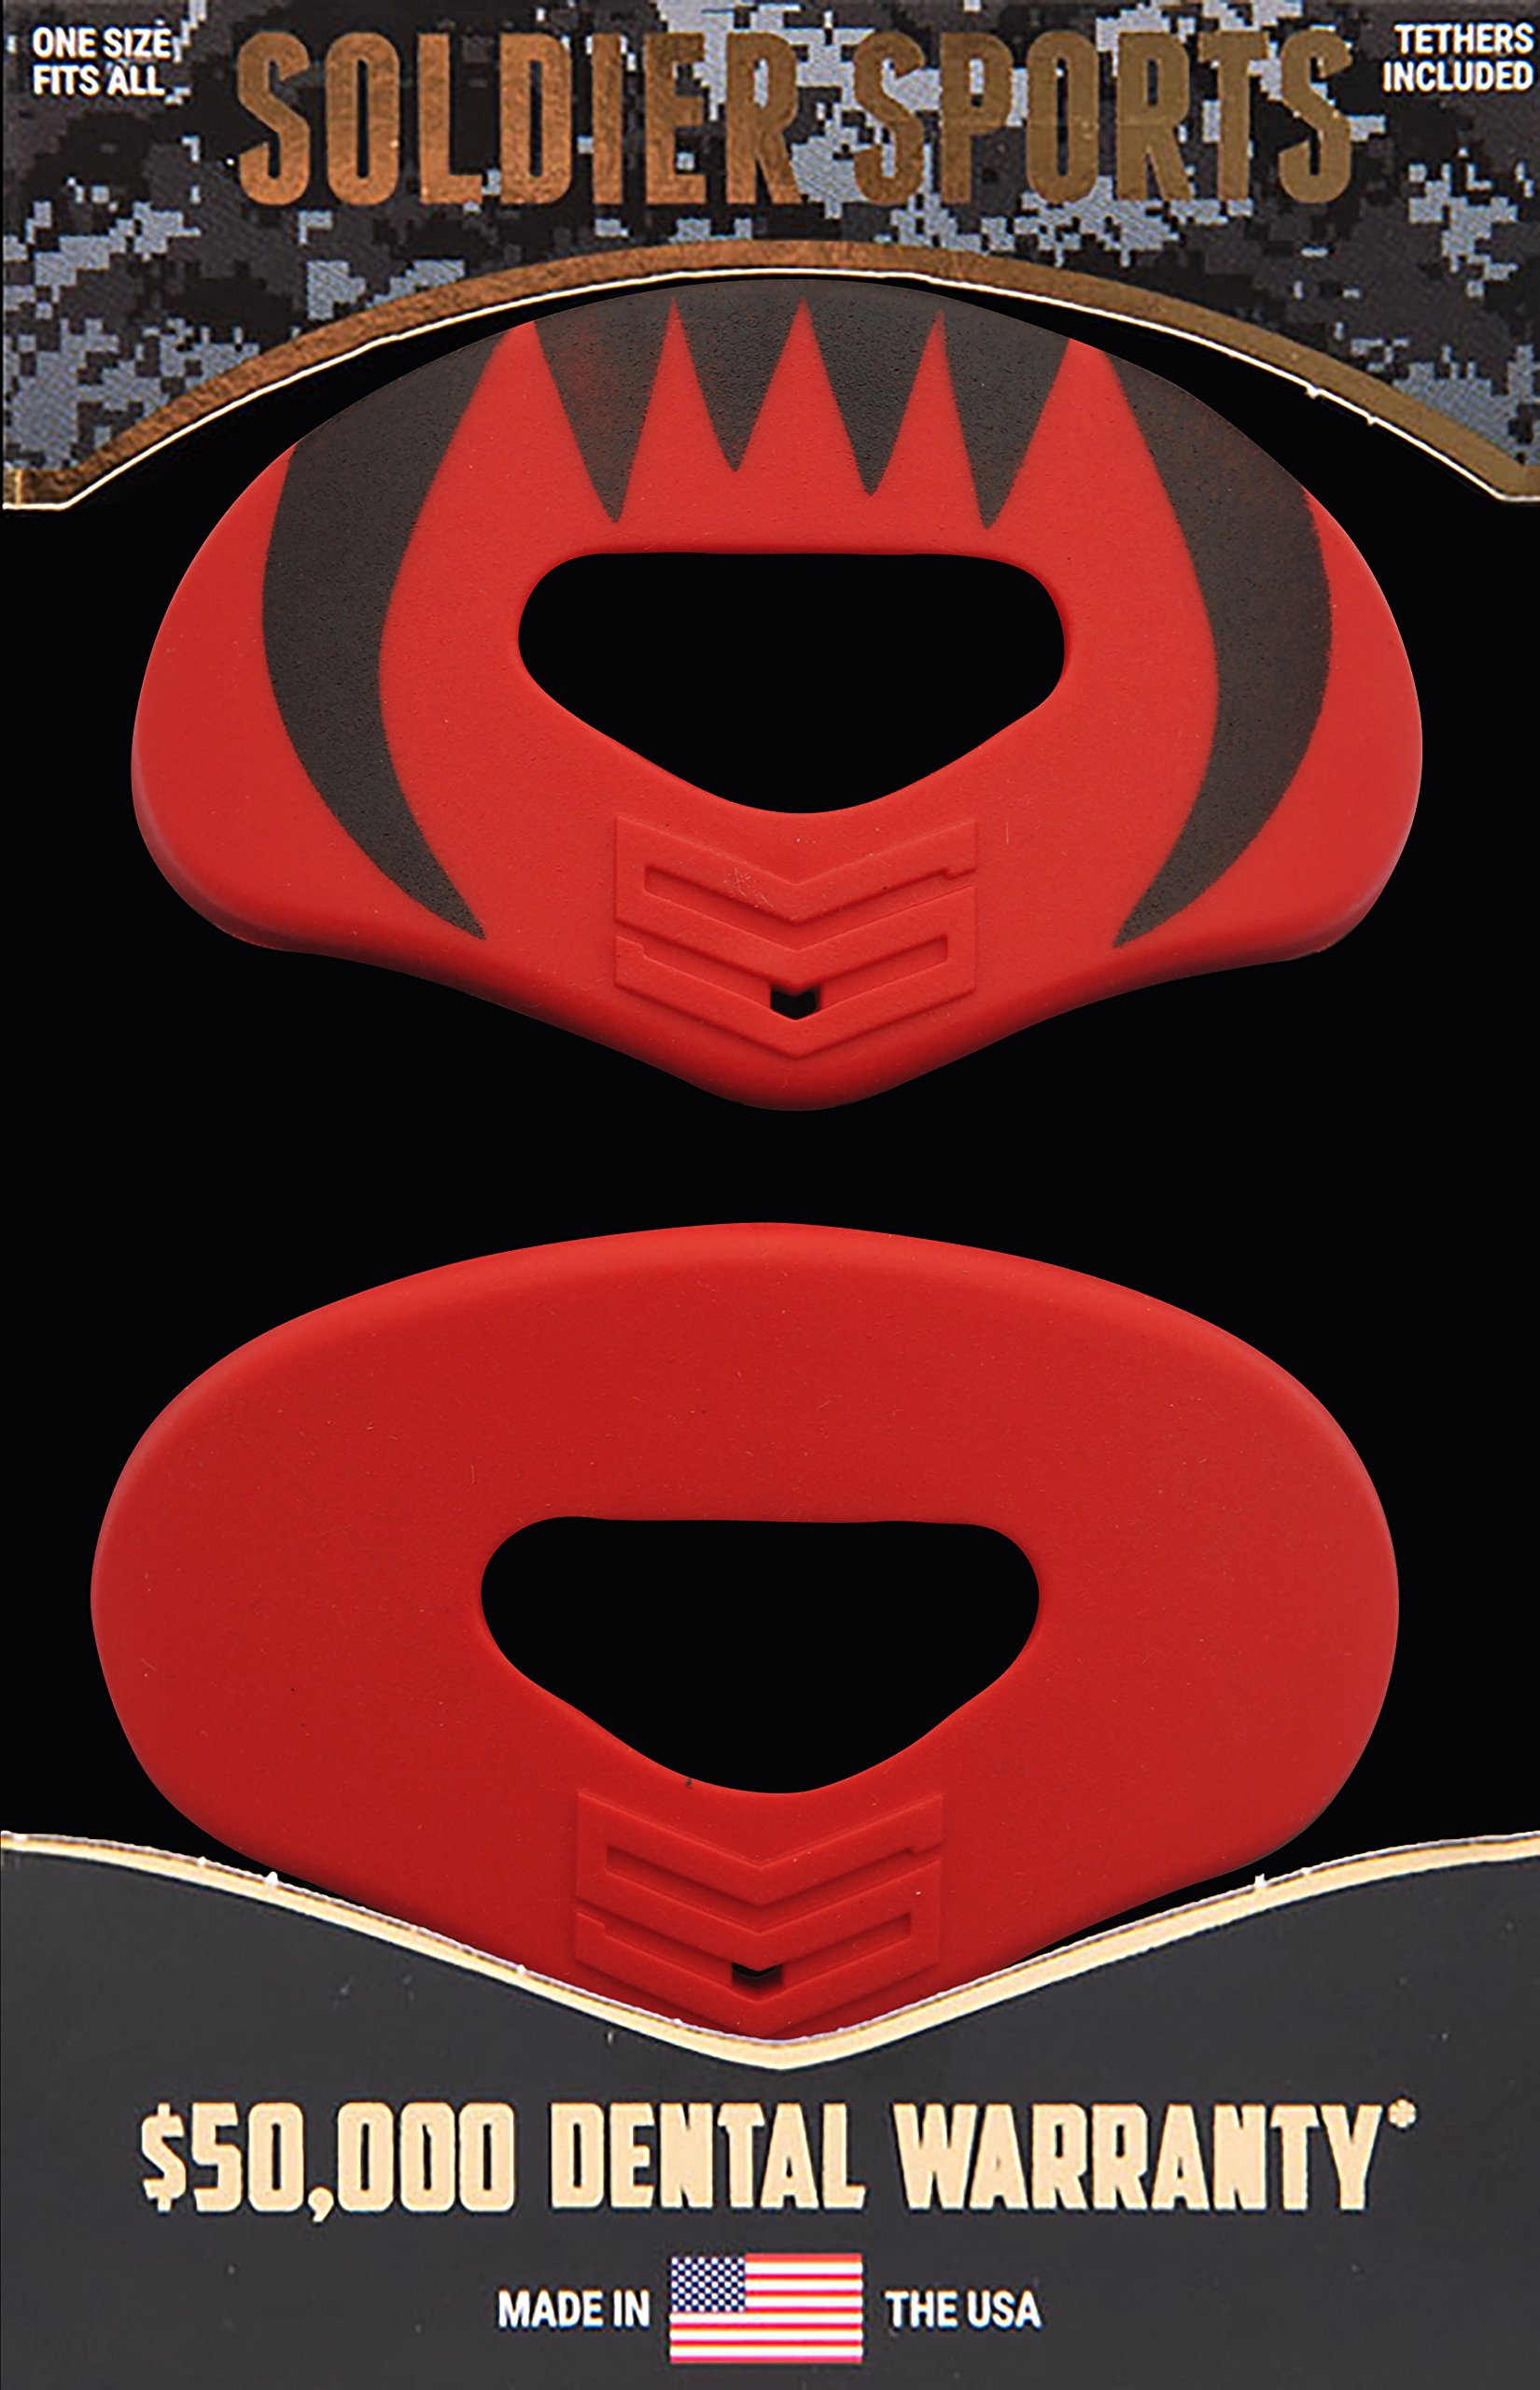 Soldier Sports Elite Air Lip Protector, Red, One Size Fits All